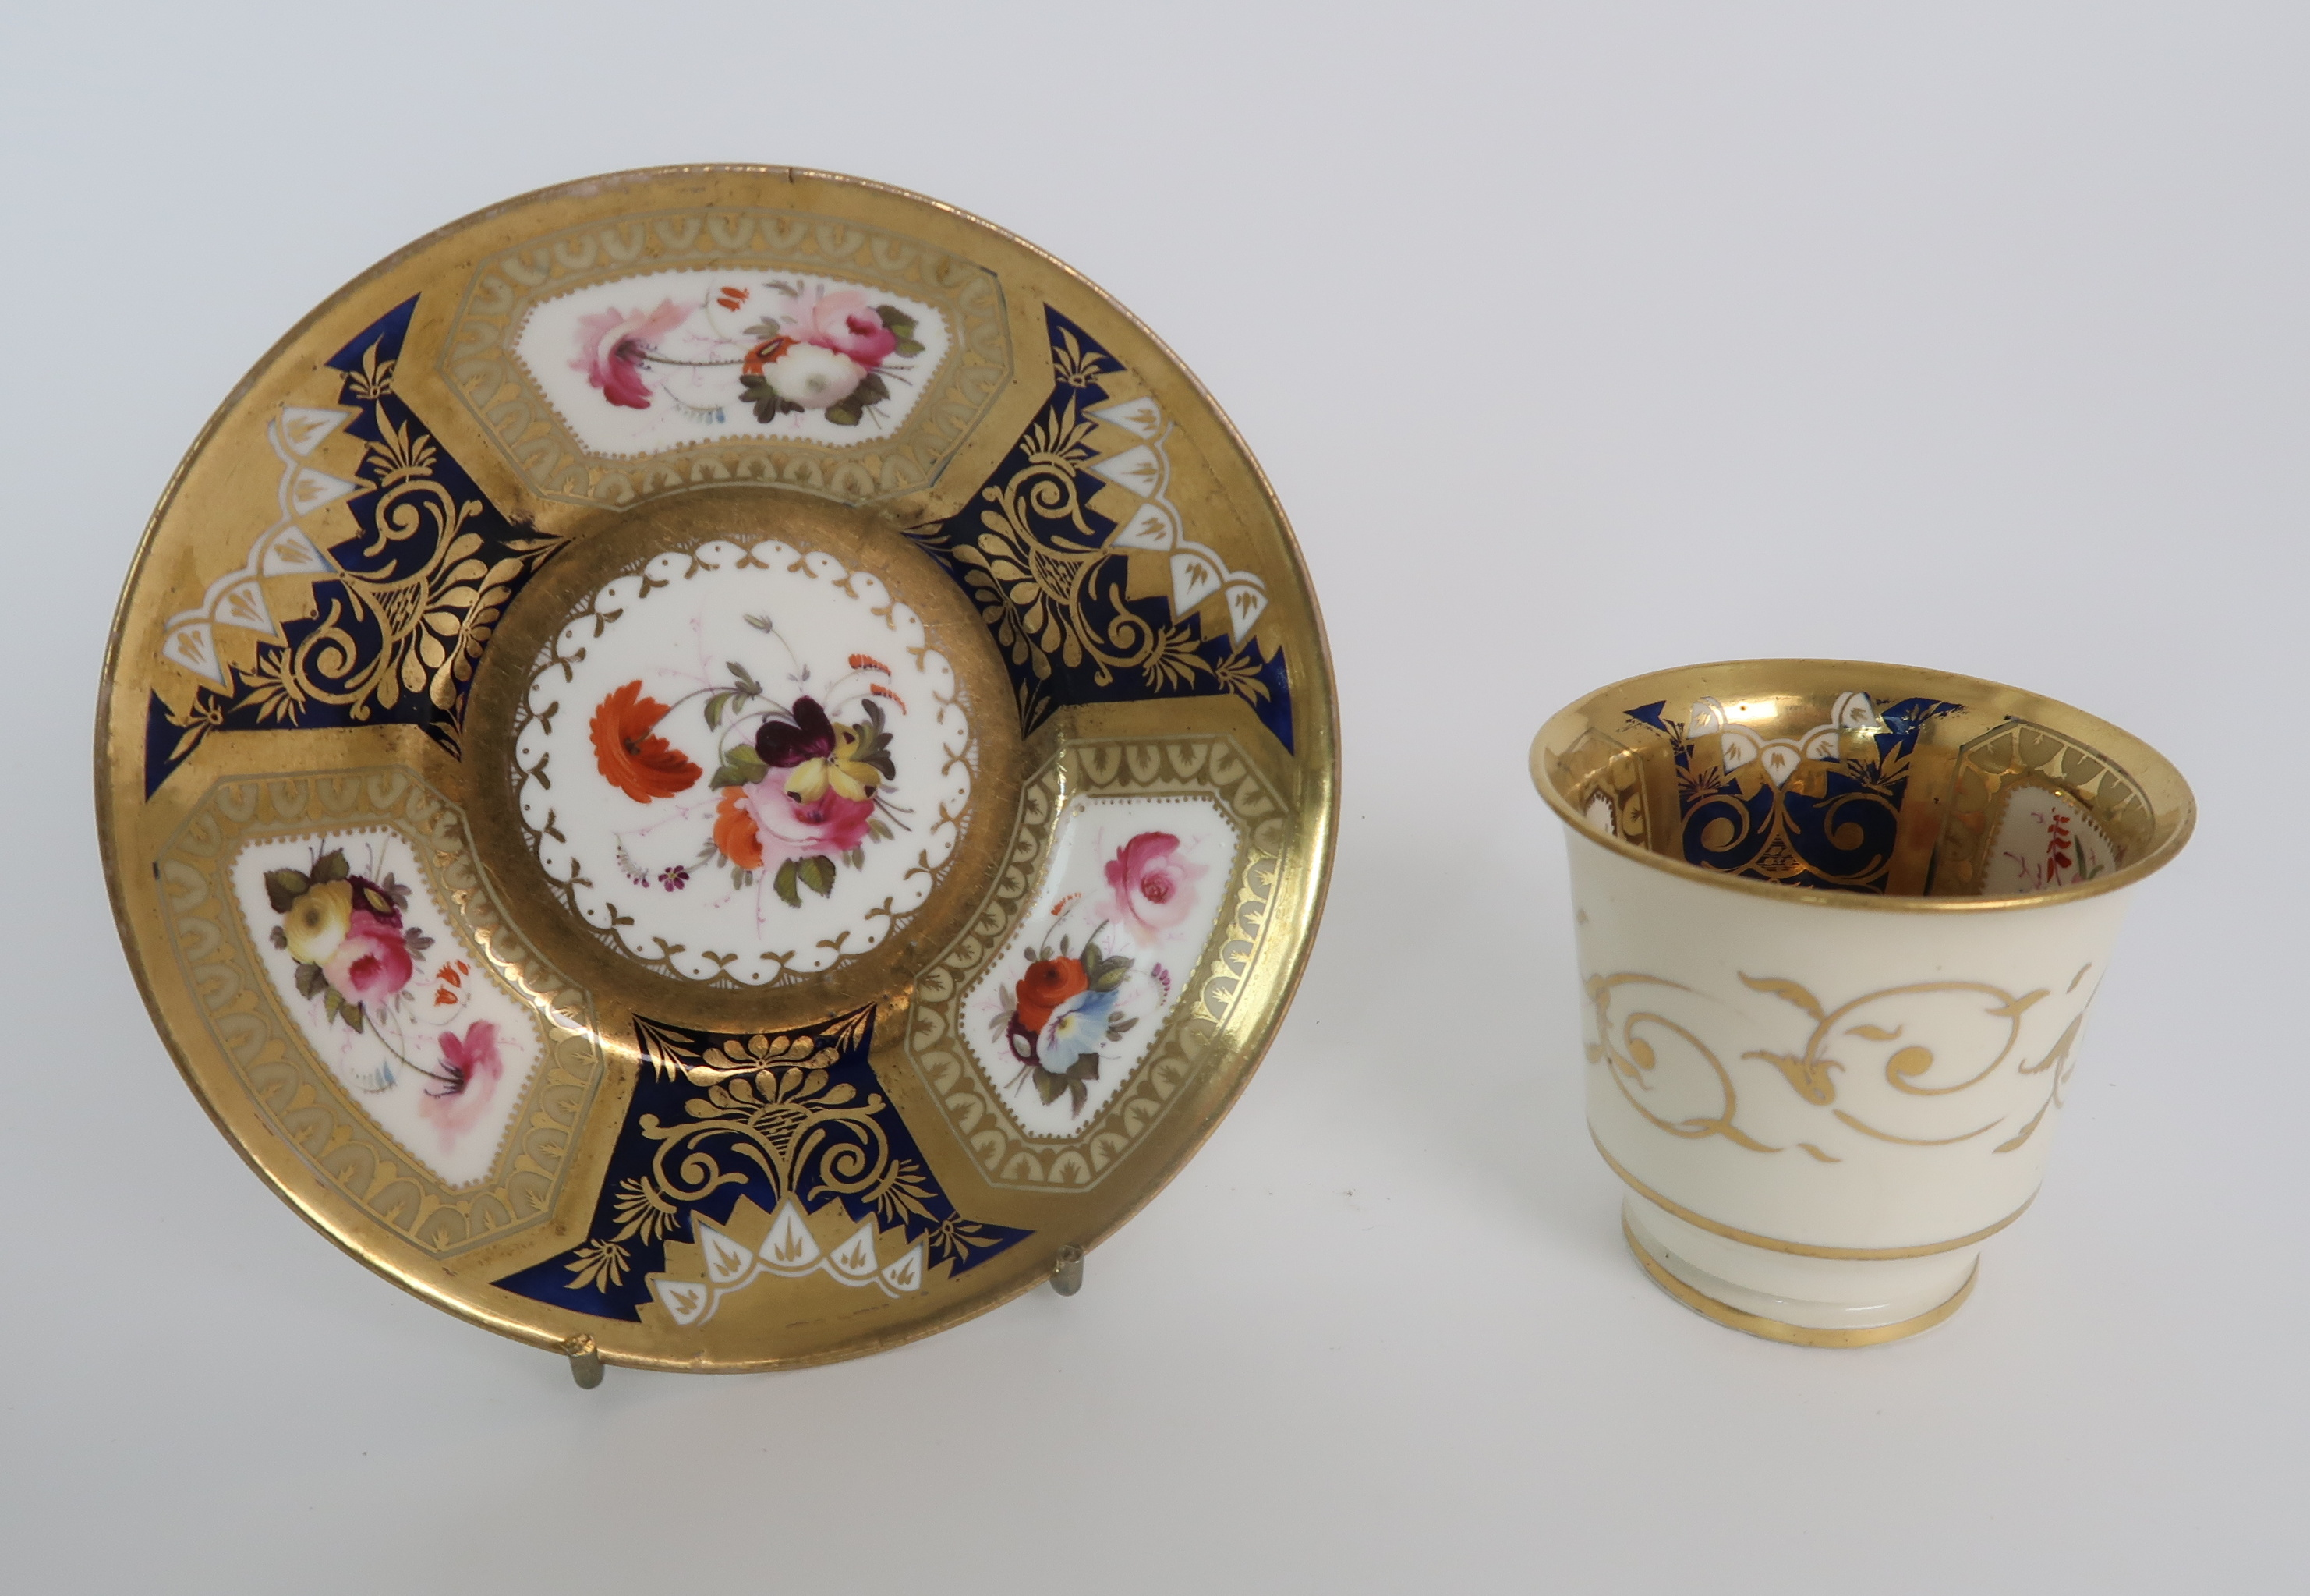 A COLLECTION OF 19TH CENTURY ENGLISH BLUE AND GILT DECORATED TEA AND COFFEE WARES including a - Image 9 of 23